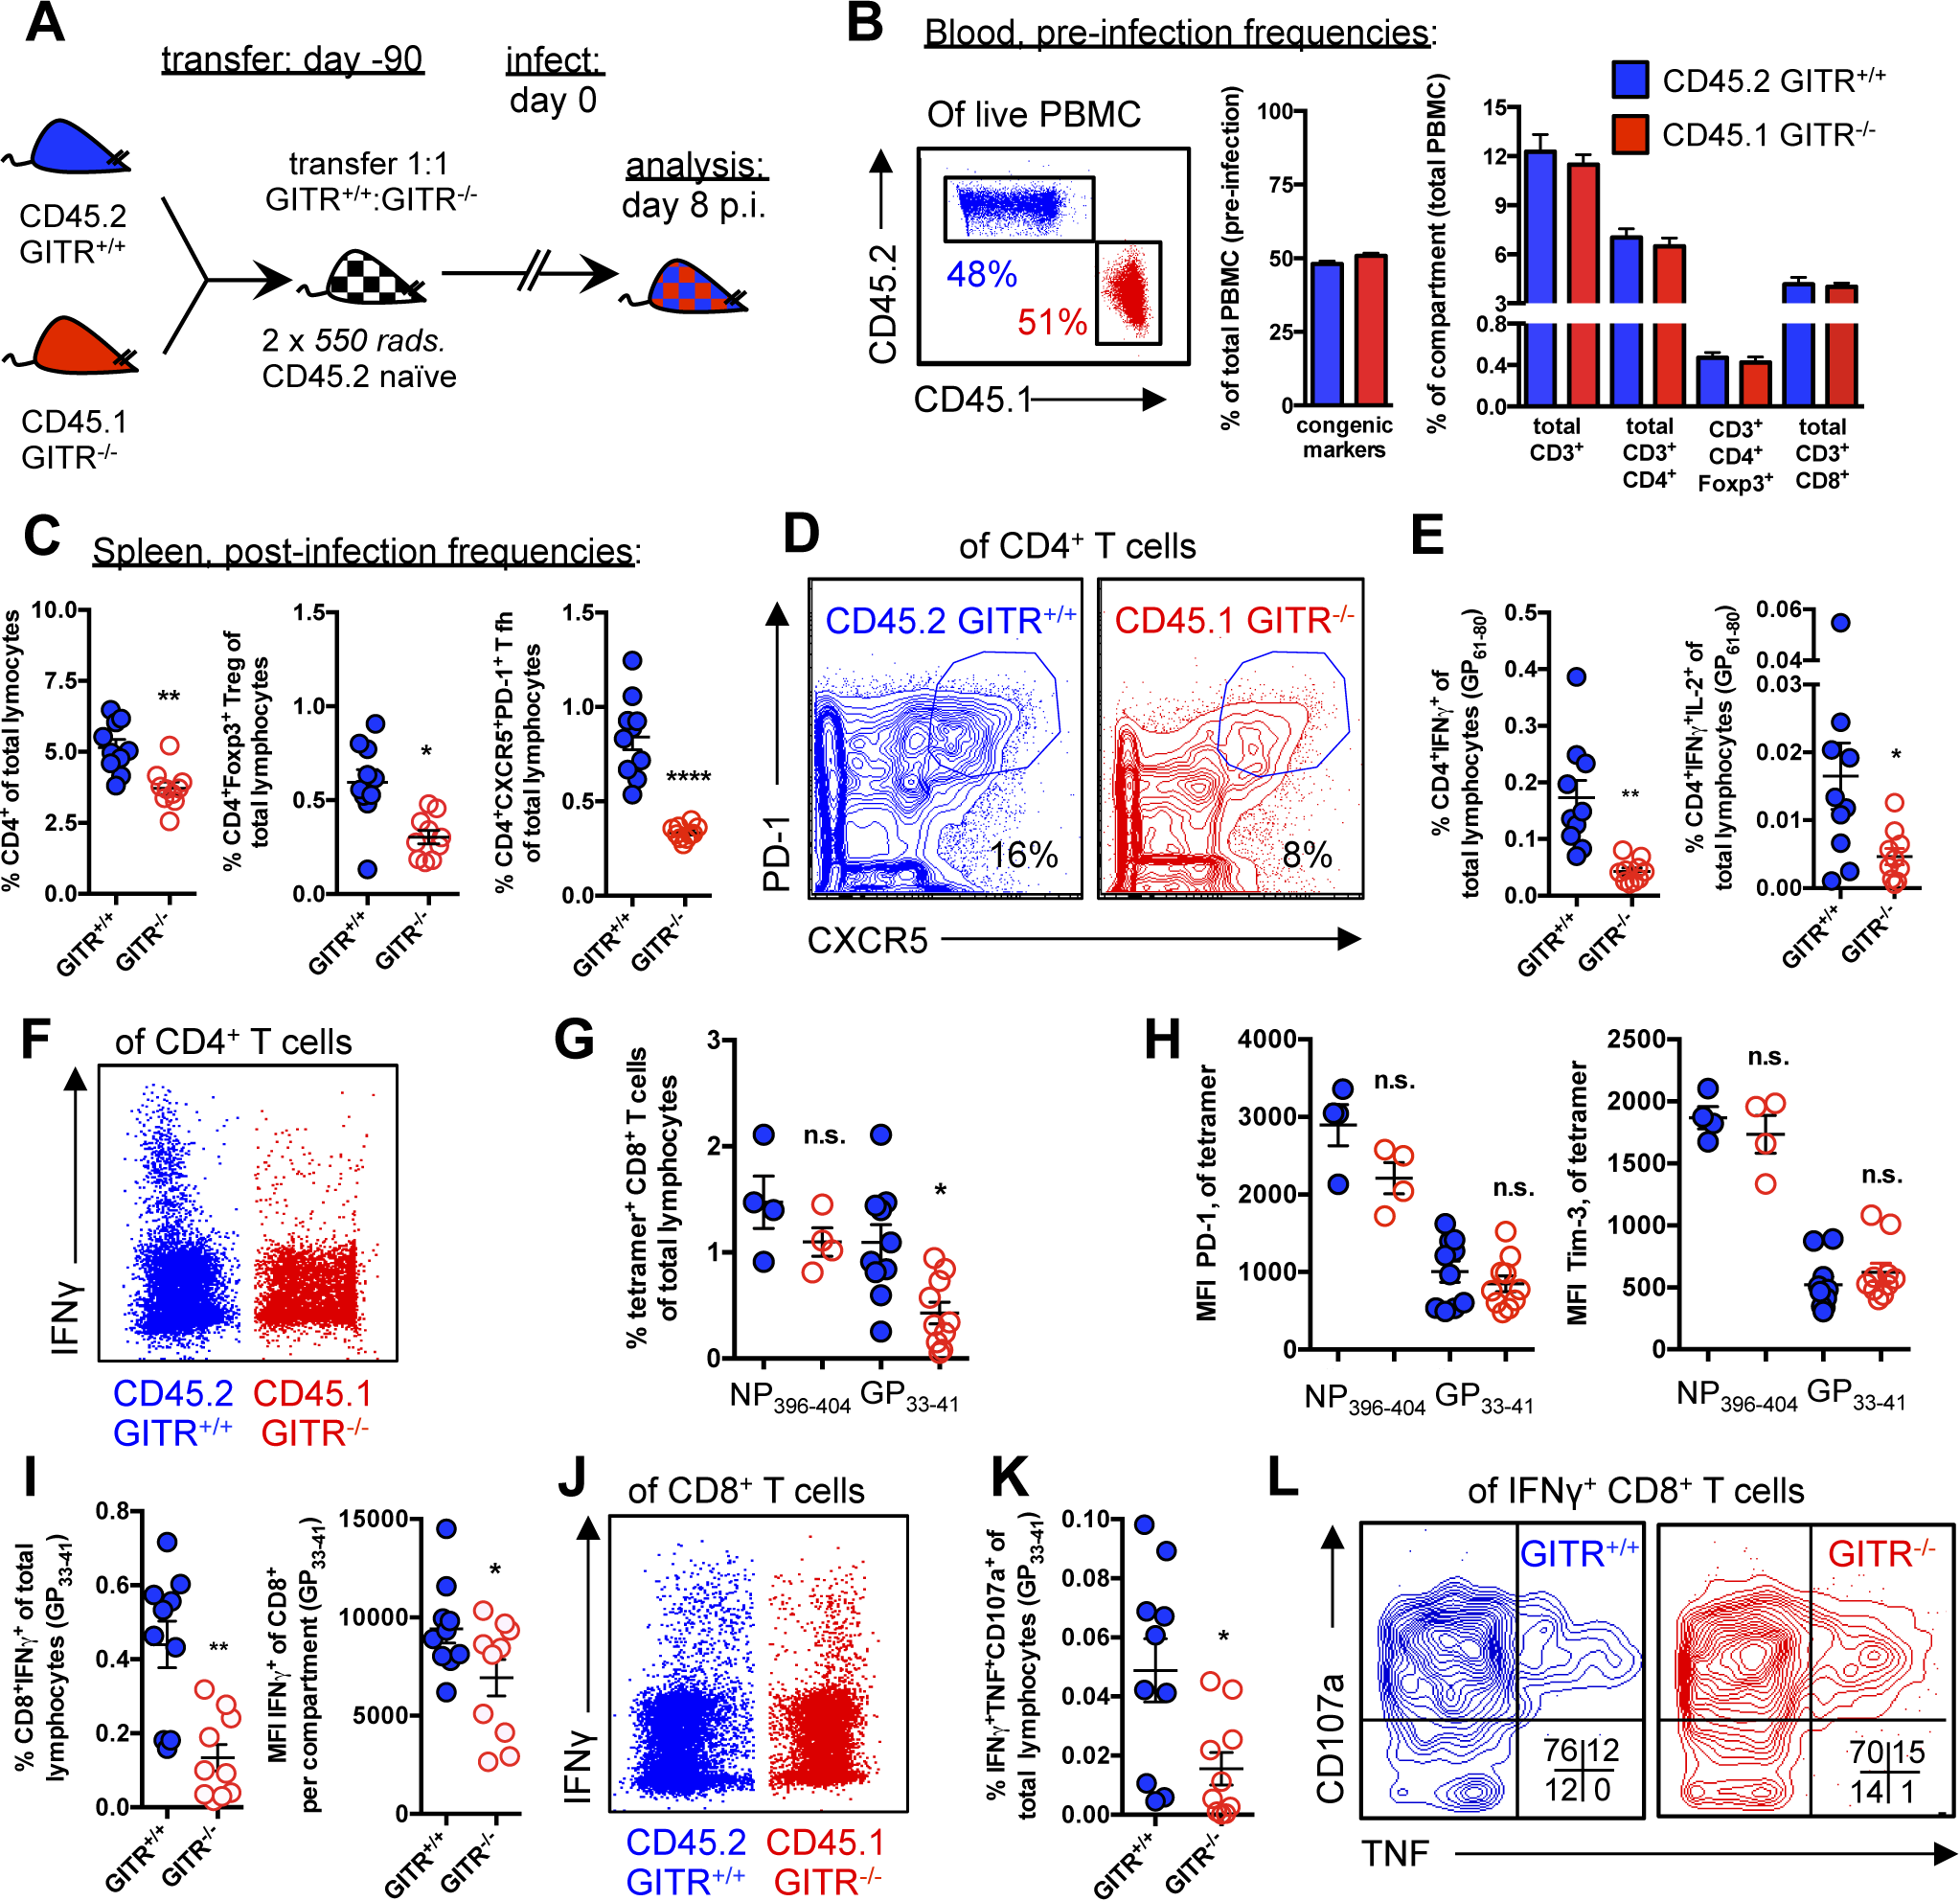 The effects of GITR-deficiency on immunity to LCMV are largely CD4 T cell-intrinsic.